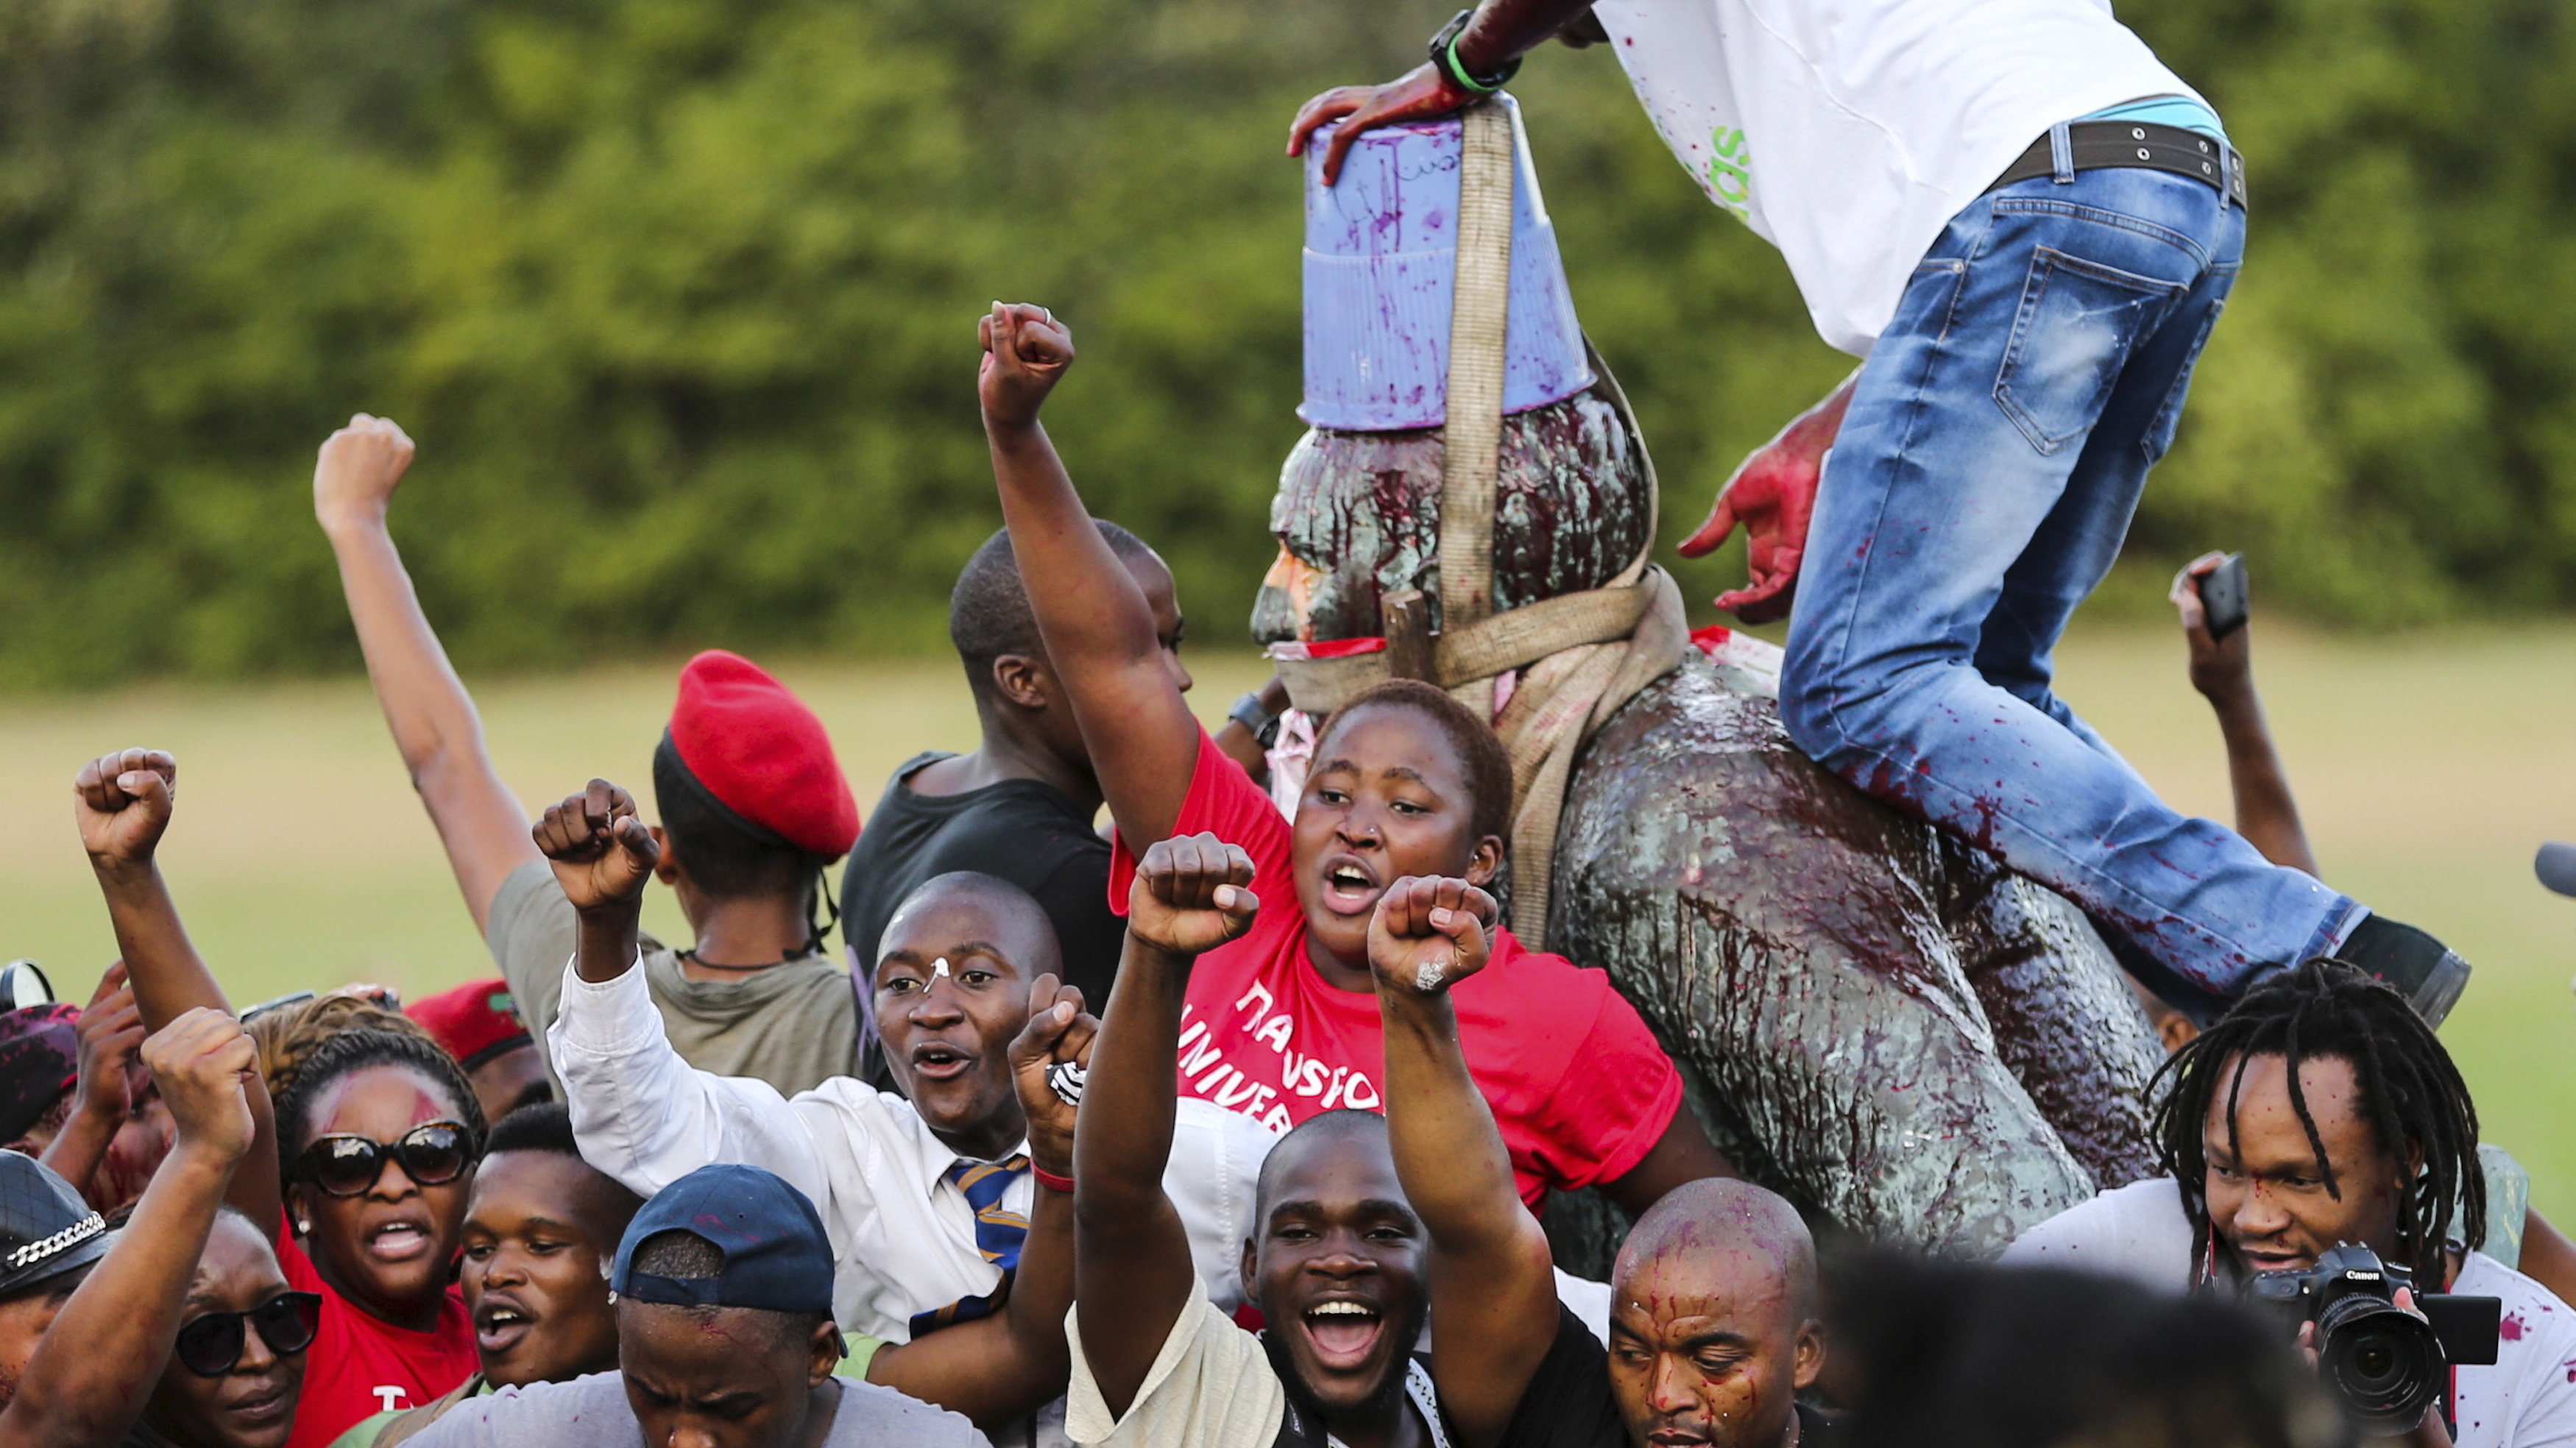 Students cheer as the statue of  Cecil John Rhodes is removed from the University of Cape Town (UCT), April 9, 2015. The statue at the university, one of Africa's top academic institutions, has been covered up for the past few weeks as both white and black students regularly marched past with #Rhodesmustfall placards calling for its removal. They believe it is a symbol of the racism against blacks that prevails in South Africa two decades after the end of oppressive white-minority rule. REUTERS/Sumaya Hisham      TPX IMAGES OF THE DAY      - RTR4WPIR